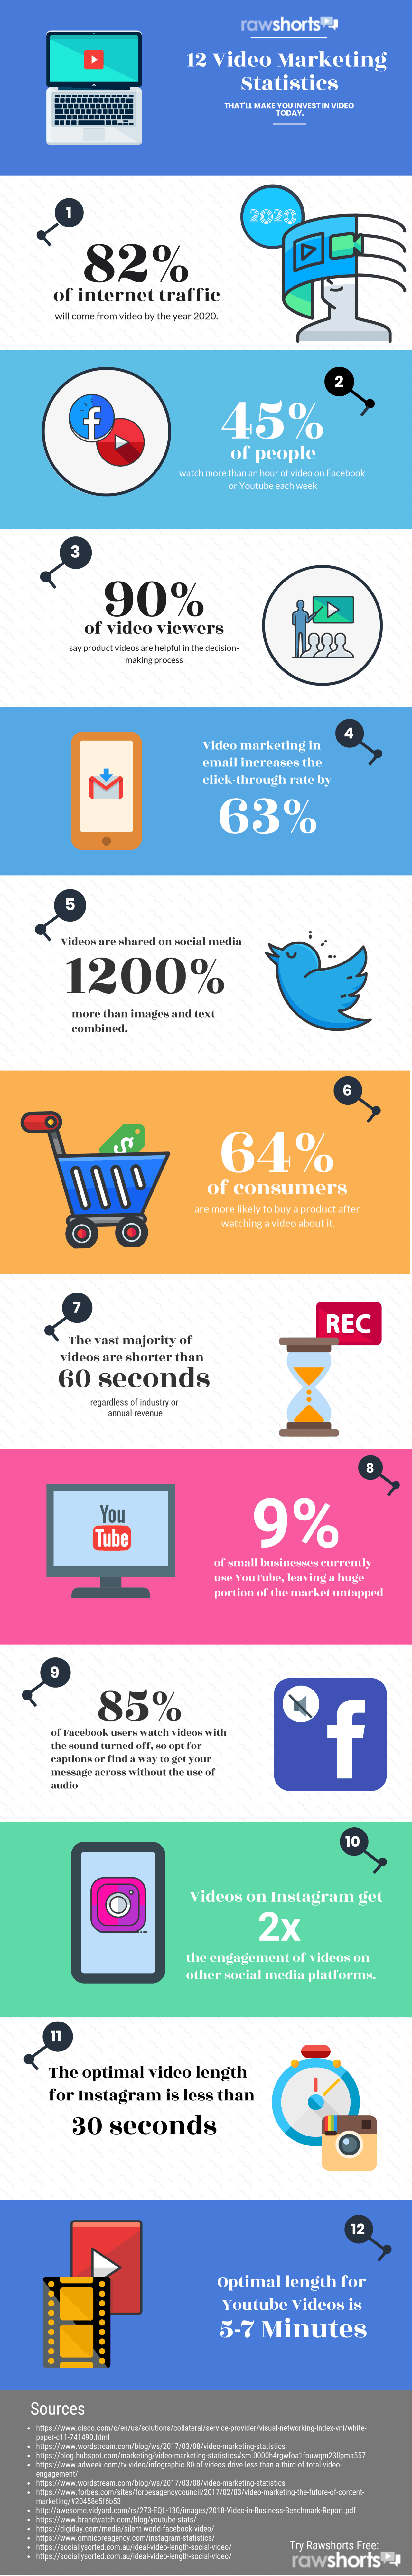 Check out this great infographic and learn more about these 12 statistics around Video Marketing!